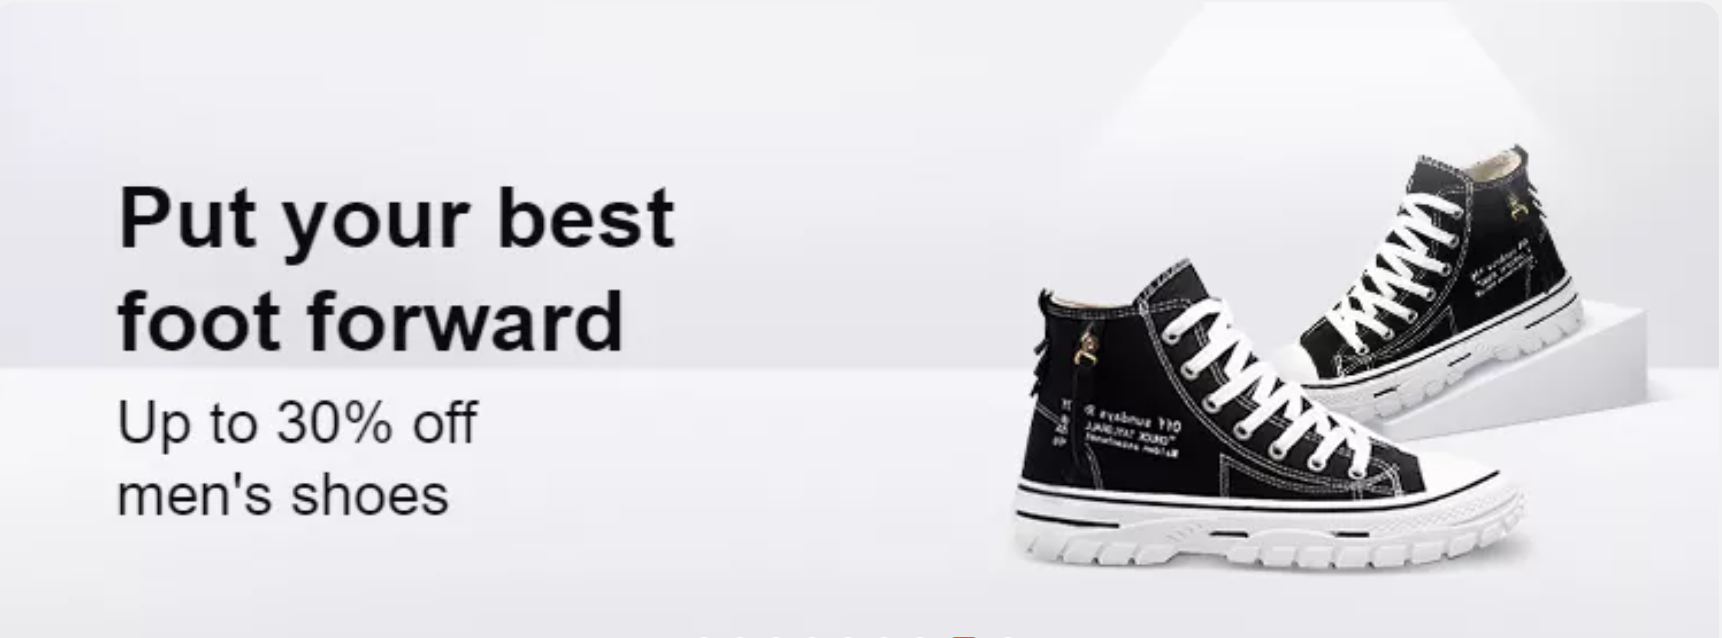 AliExpress:  Up to $13 off or $3 off $5 Sitewide